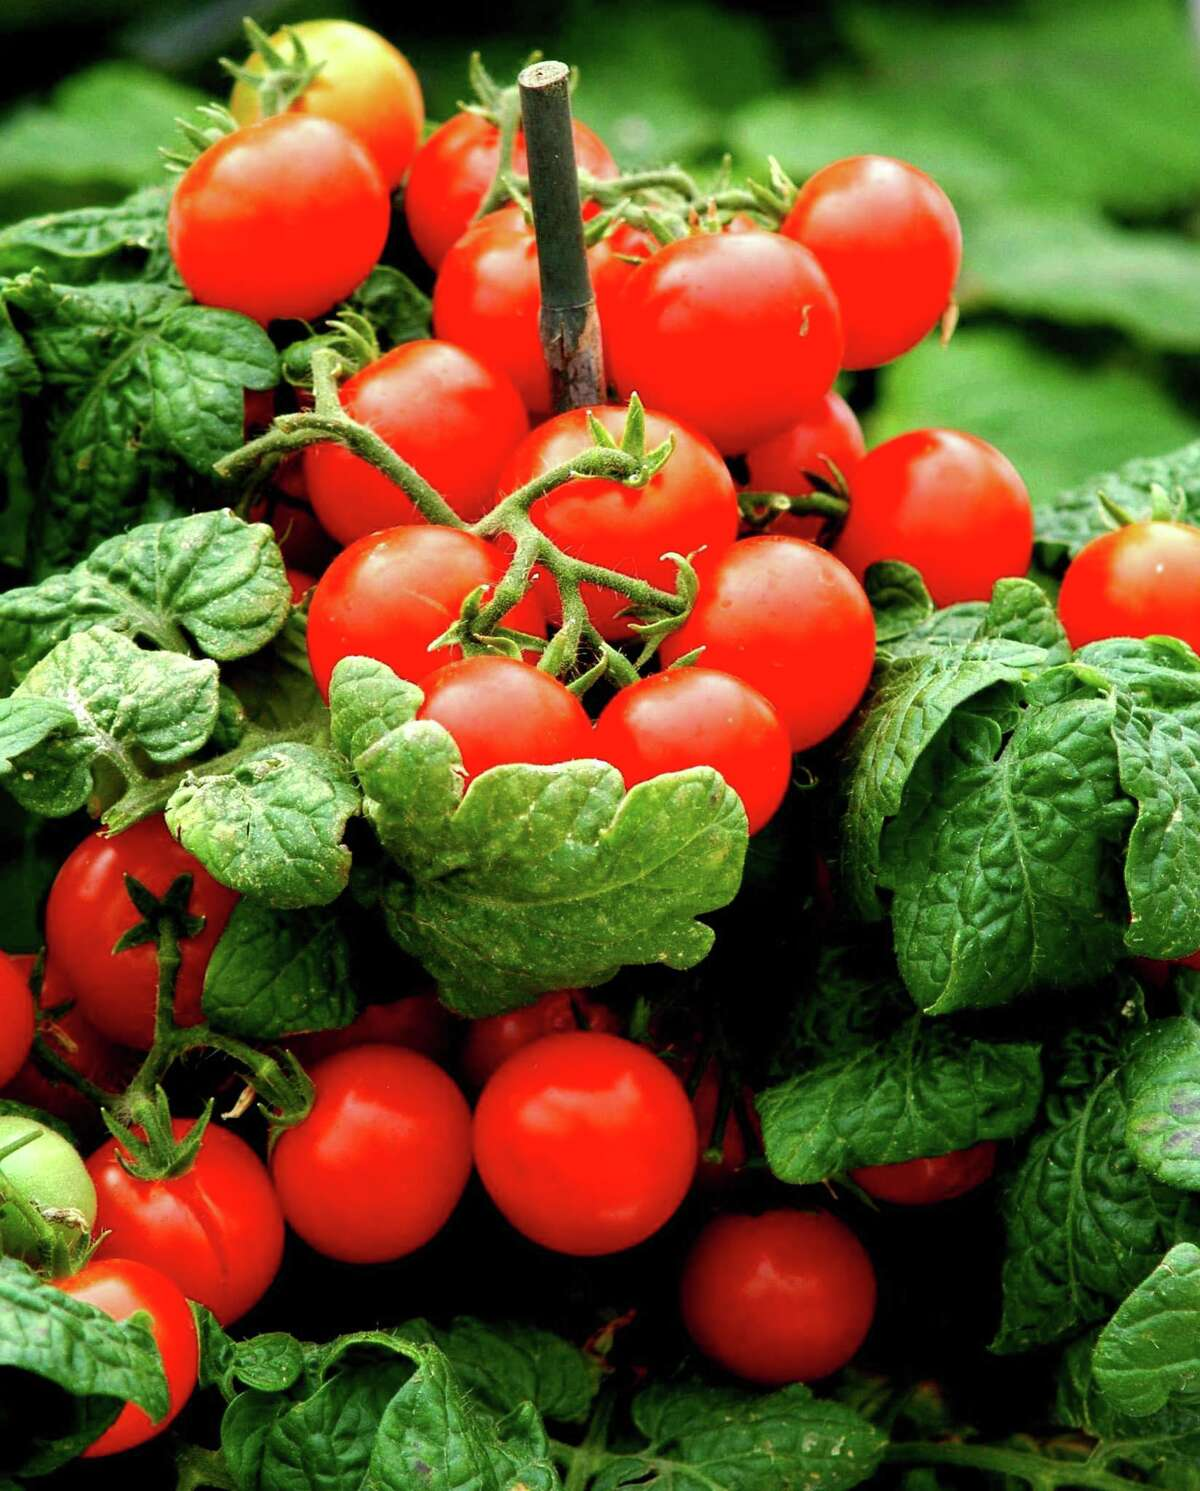 Sweet N Neat Scarlet tomato is one of the small-tomato varieties that works well on porch patio, deck or in garden.